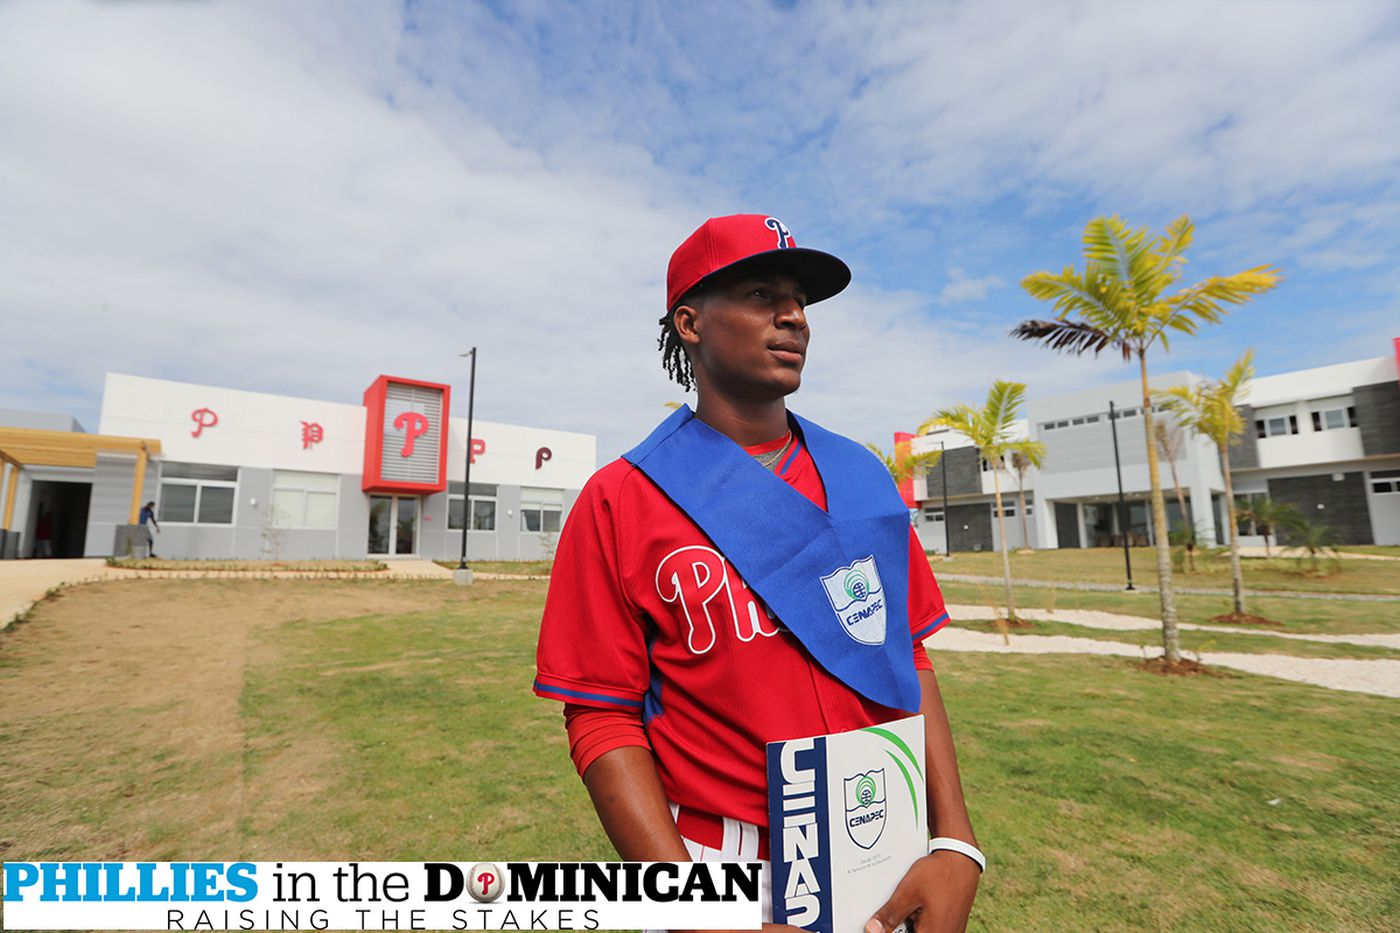 Phillies prospect Sixto Sánchez the latest fascination in Latino pitching pipeline